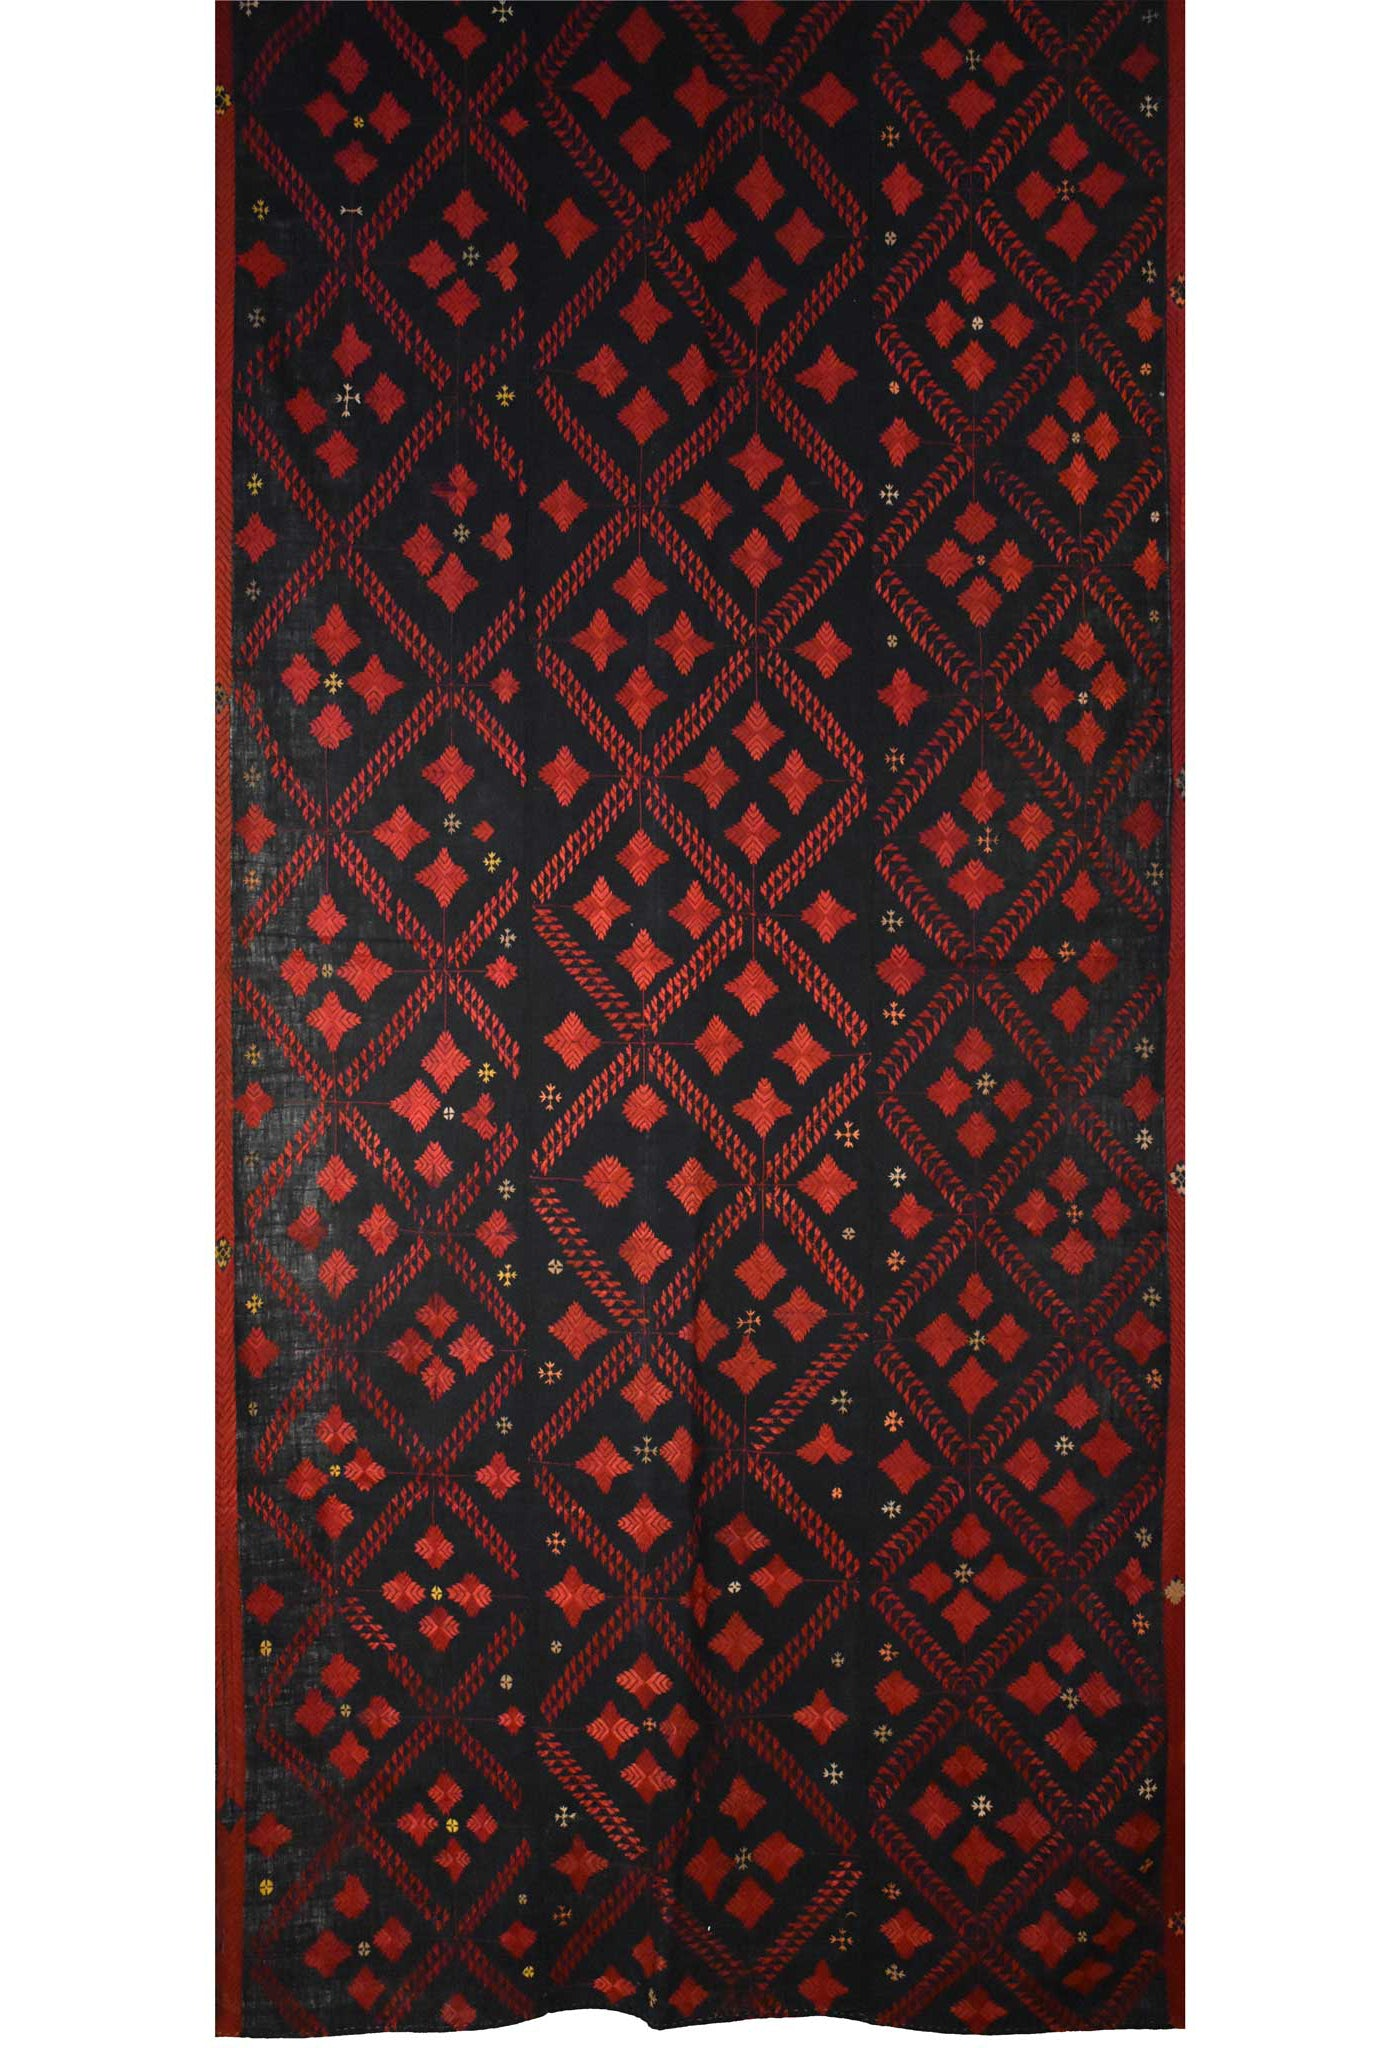 Swat Valley Shawl Mid-Century